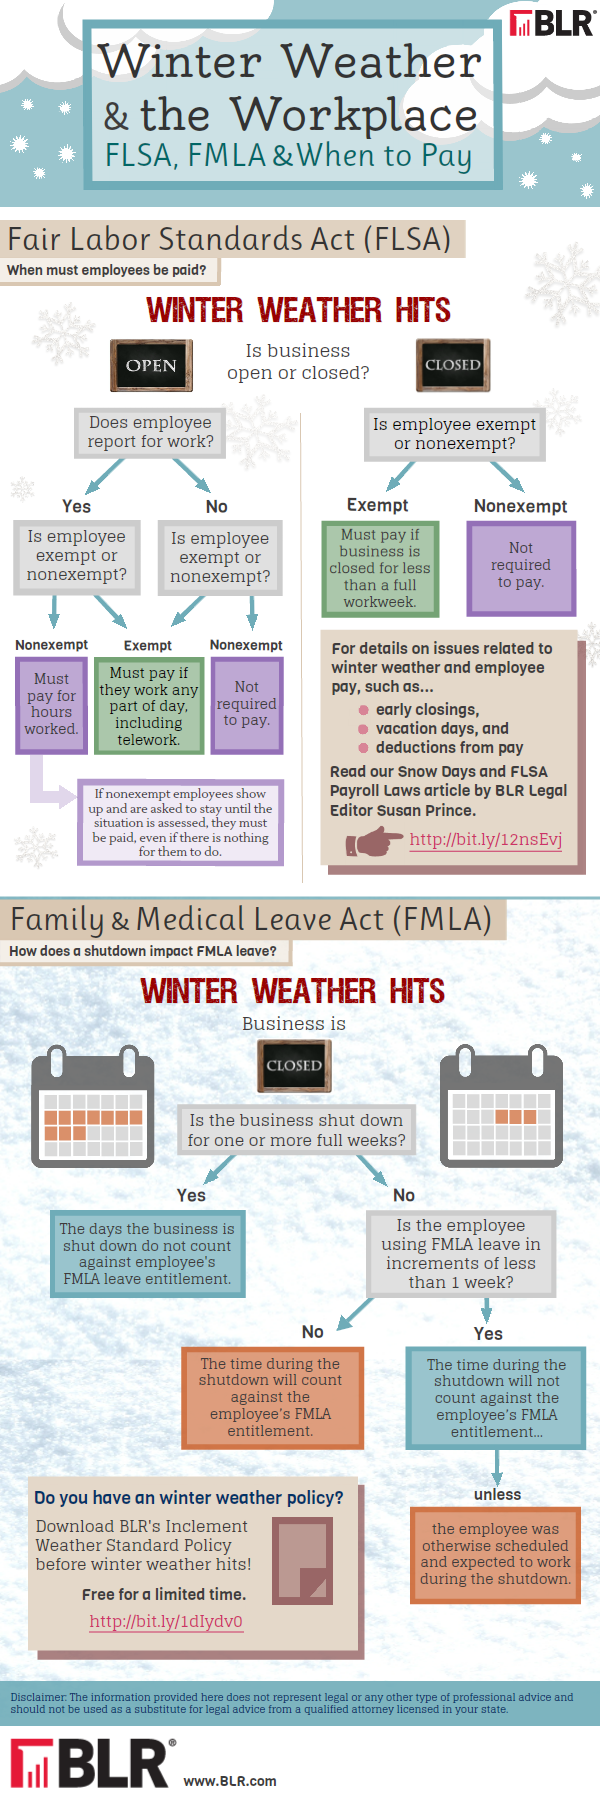 Winter Weather and the Workplace: FLSA, FMLA and When to Pay Infographic